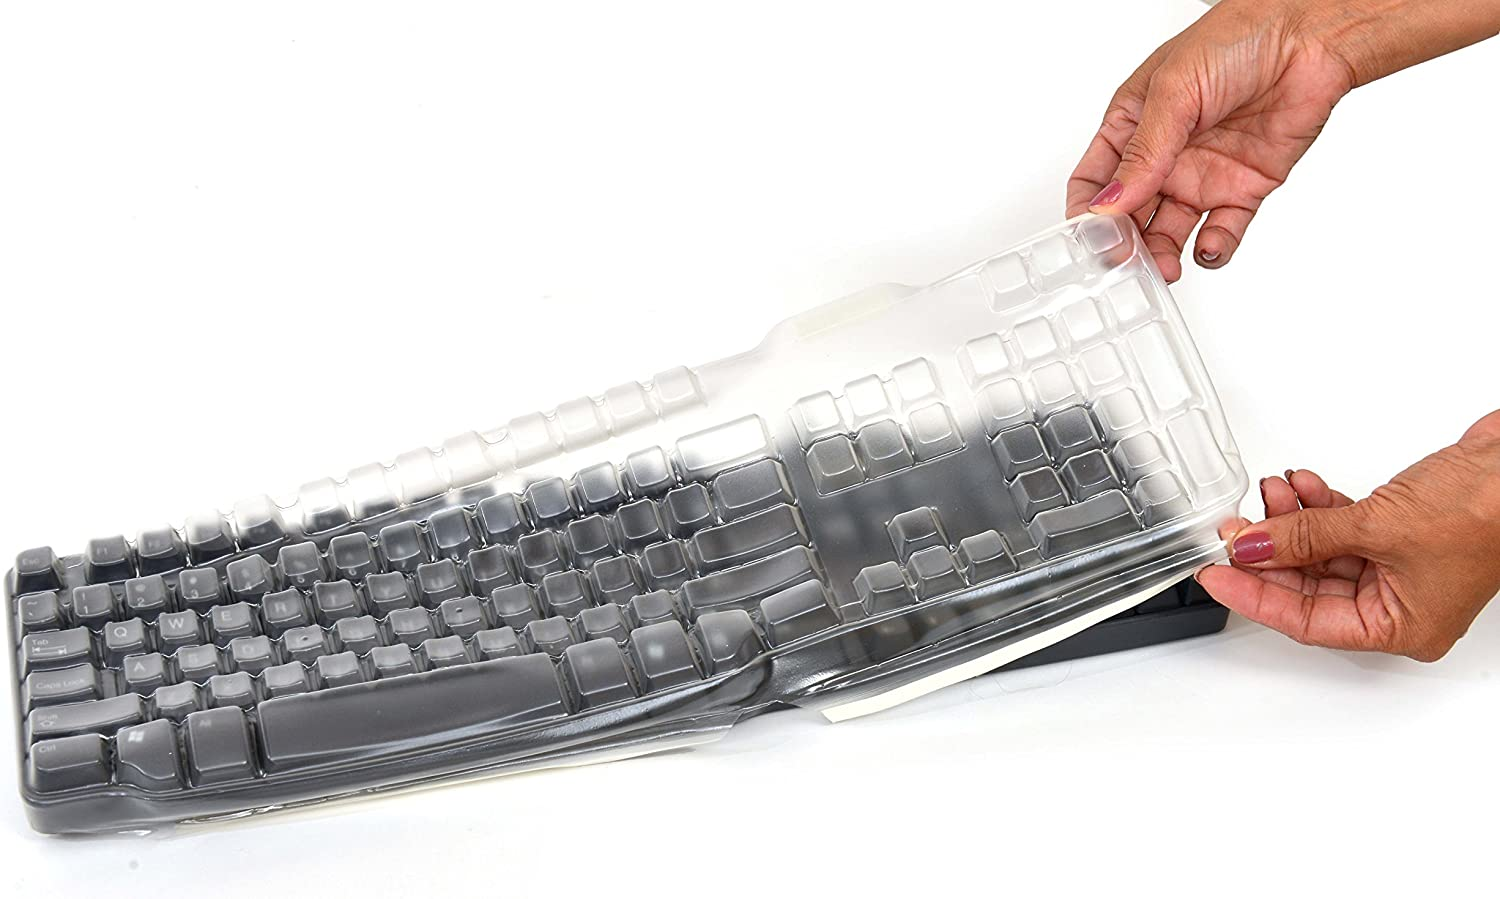 Dell SK-8115 LATEX FREE Keyboard cover, protect it from liquid spills, dust, dirt, food, grease and bacteria. Easy to clean and disinfect by Comp Bind Technology